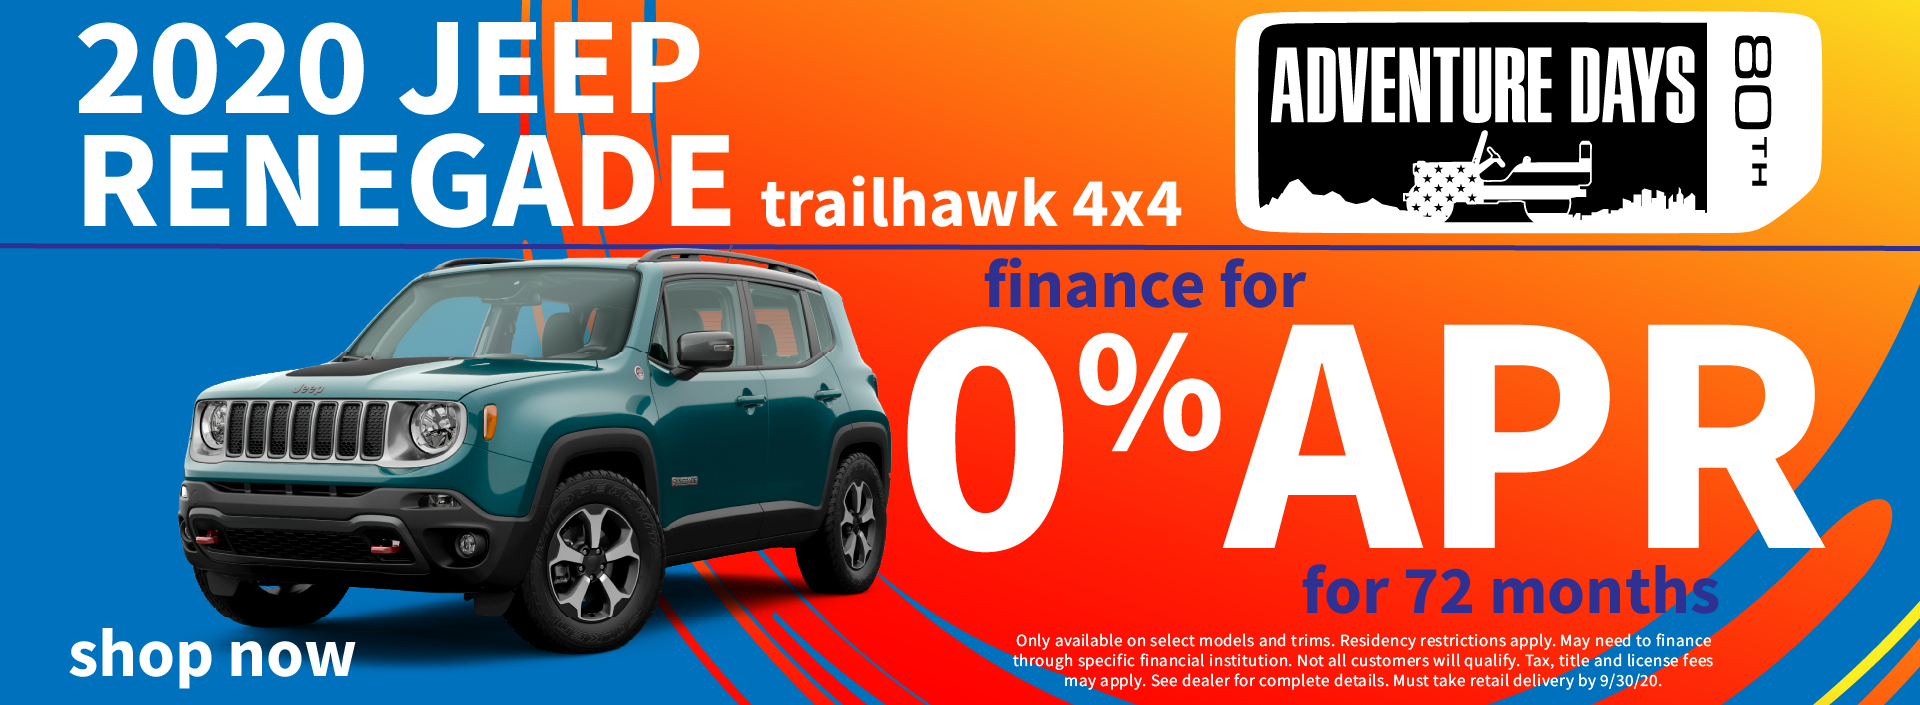 2020 Jeep Renegade Finance Special